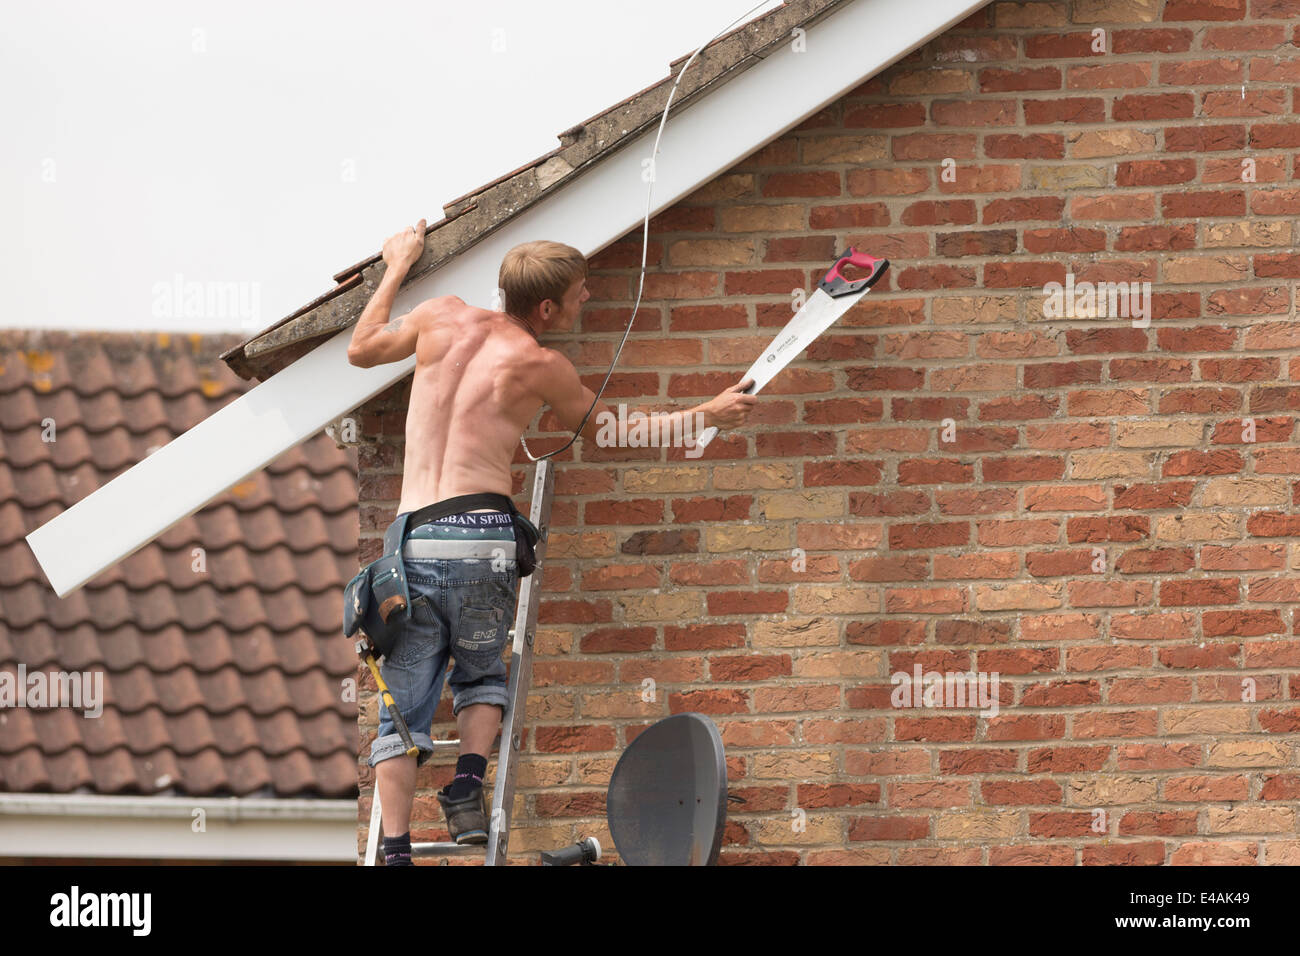 Replace fascia boards in sections - Workman Replacing Fascia Boards On A House Roof Stock Photo